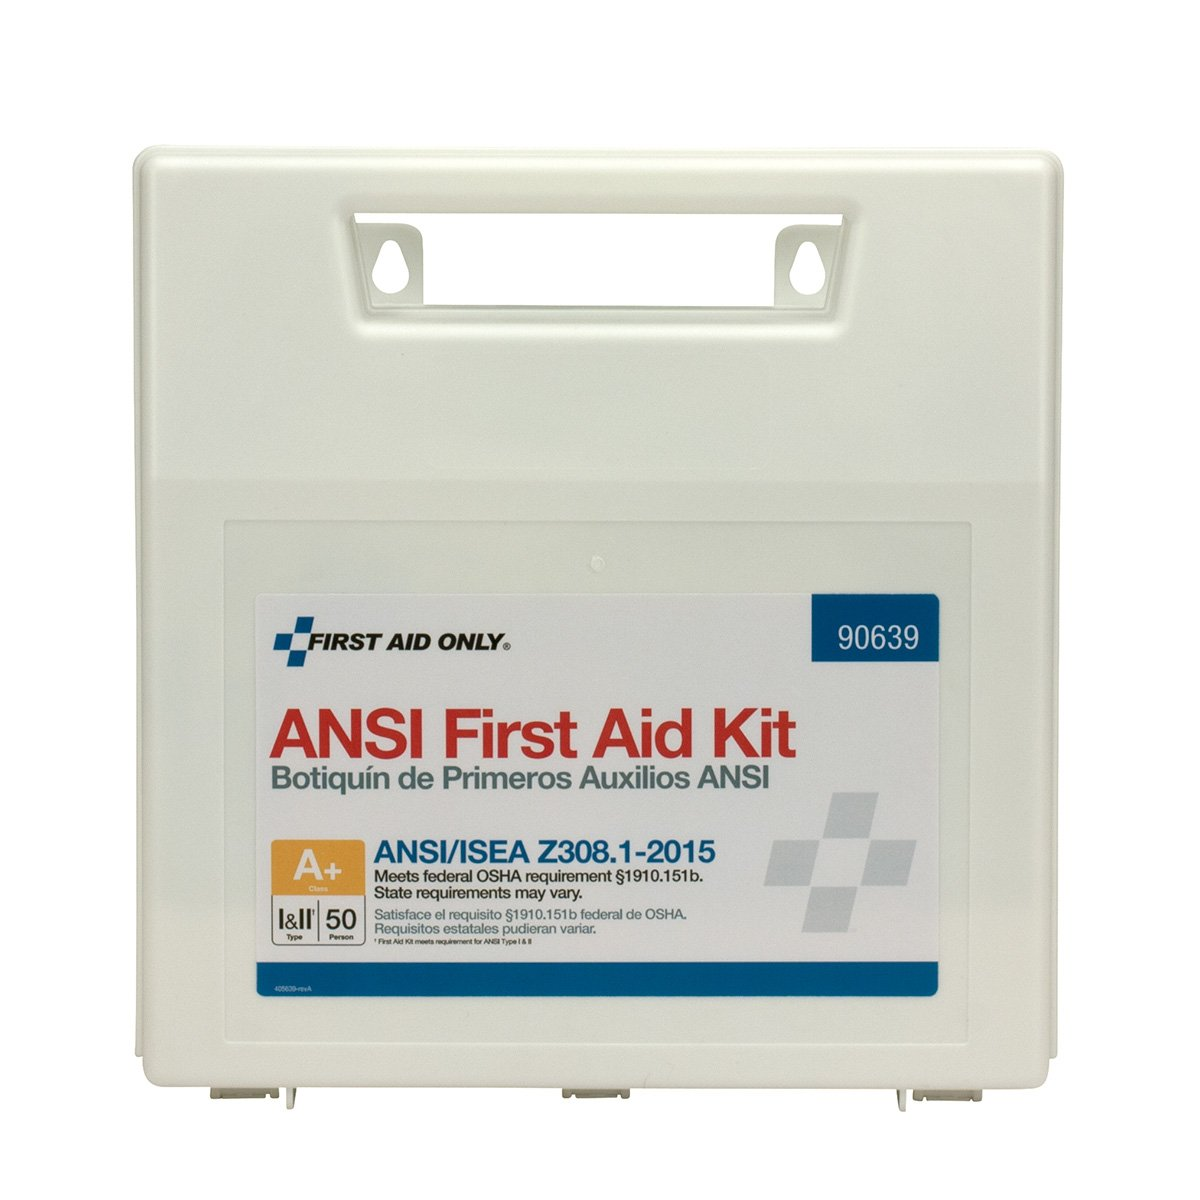 First Aid Only 90639 50 Person Bulk ANSI A+ First Aid Kit by First Aid Only